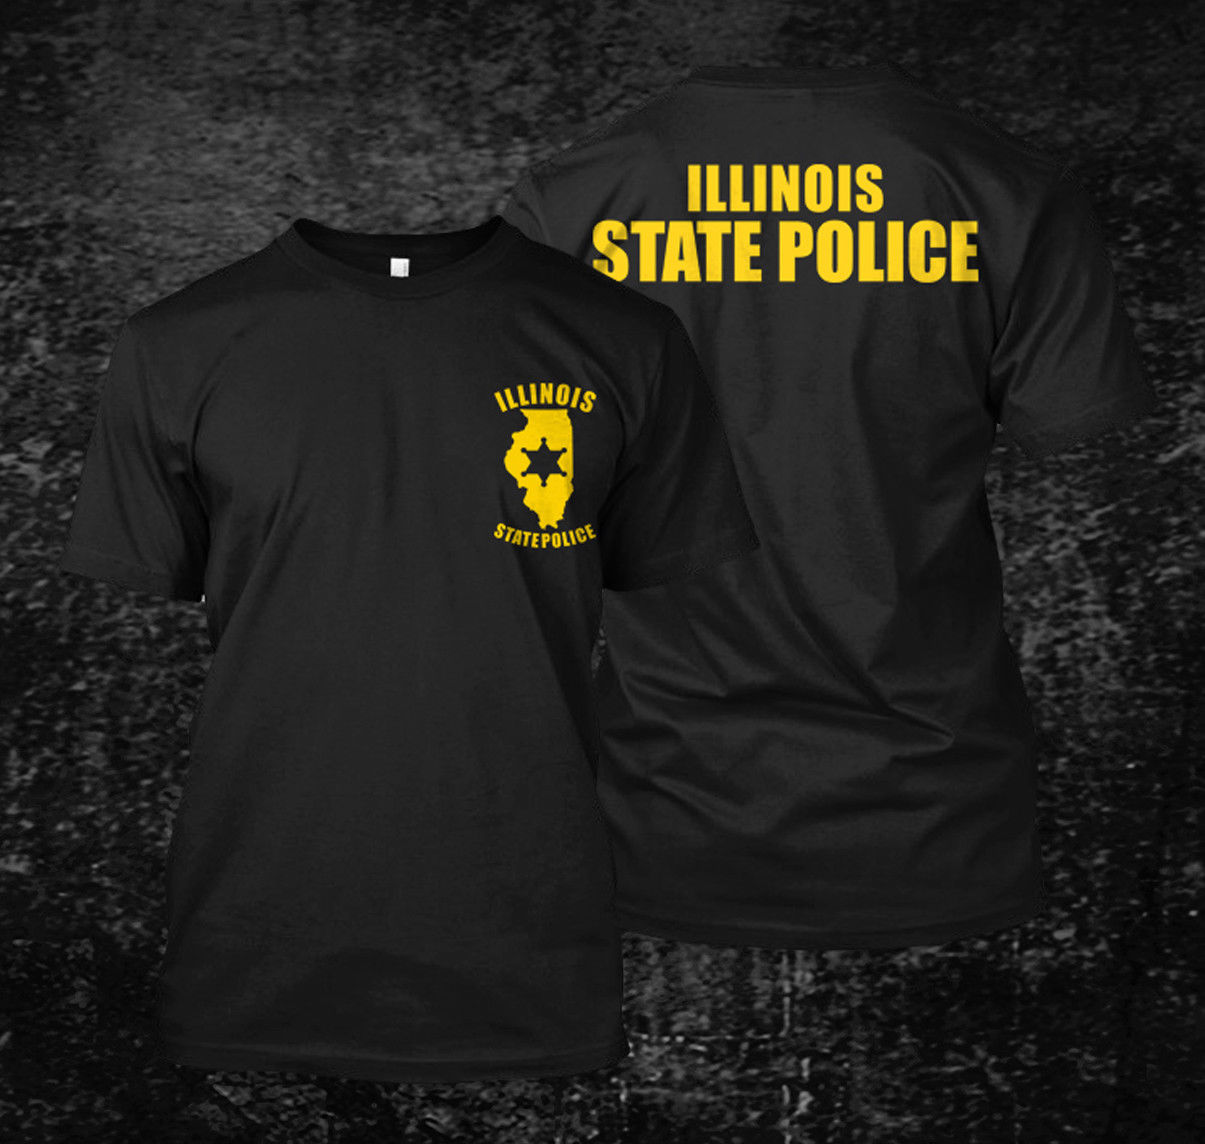 Loose Black Men Tshirts Homme Tees <font><b>Illinois</b></font> Police State Police USA - Custom Men's T-Shirt Tee Print T-Shirt Mens image